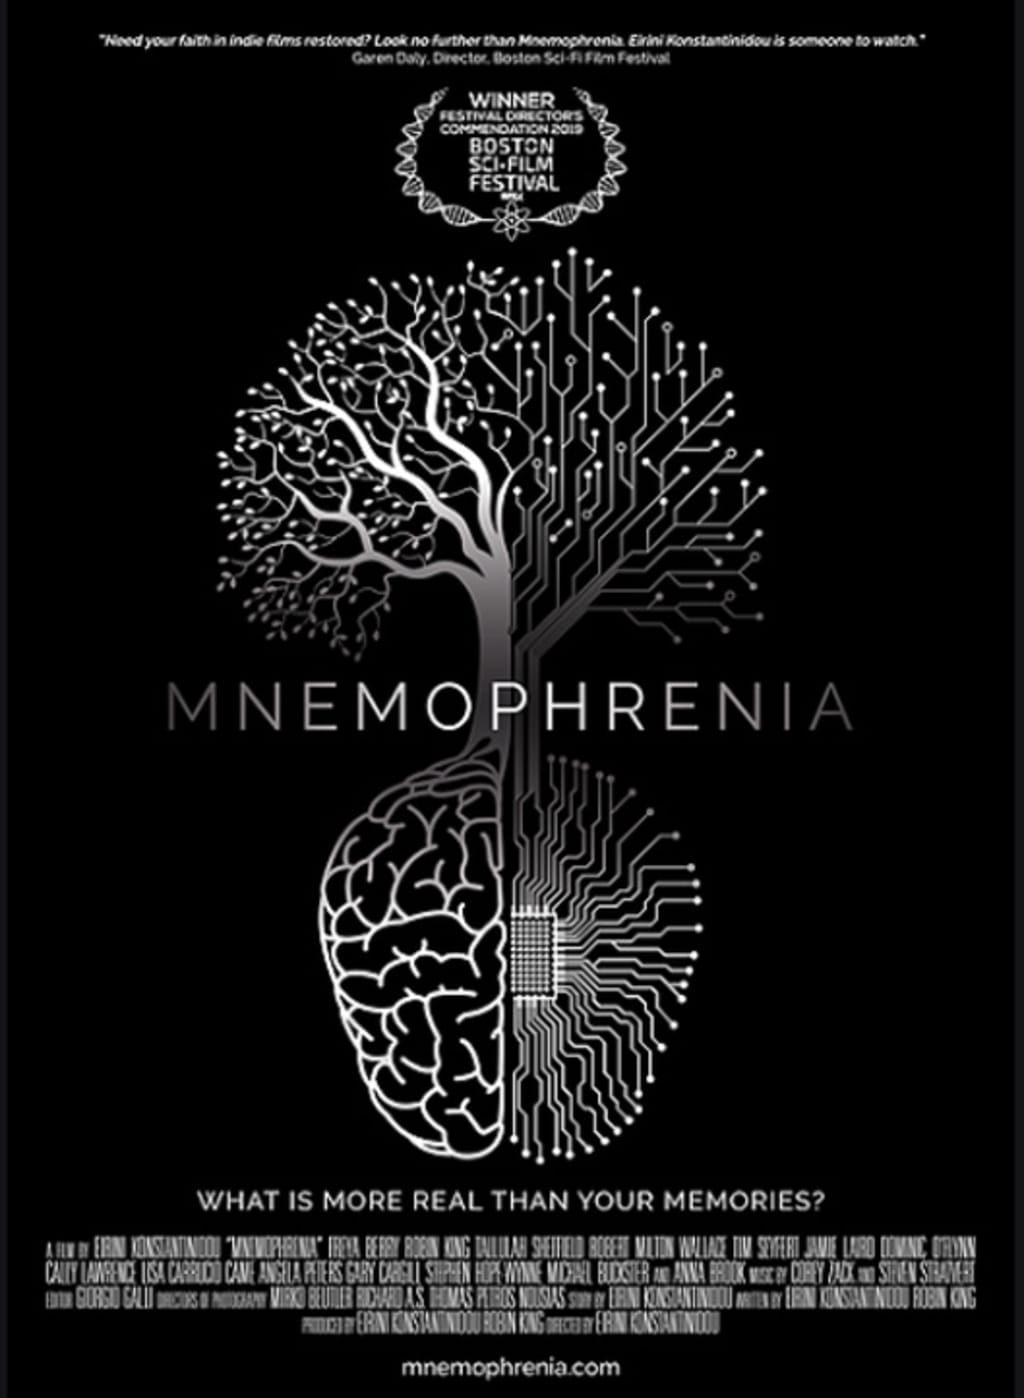 Review of 'Mnemophrenia'